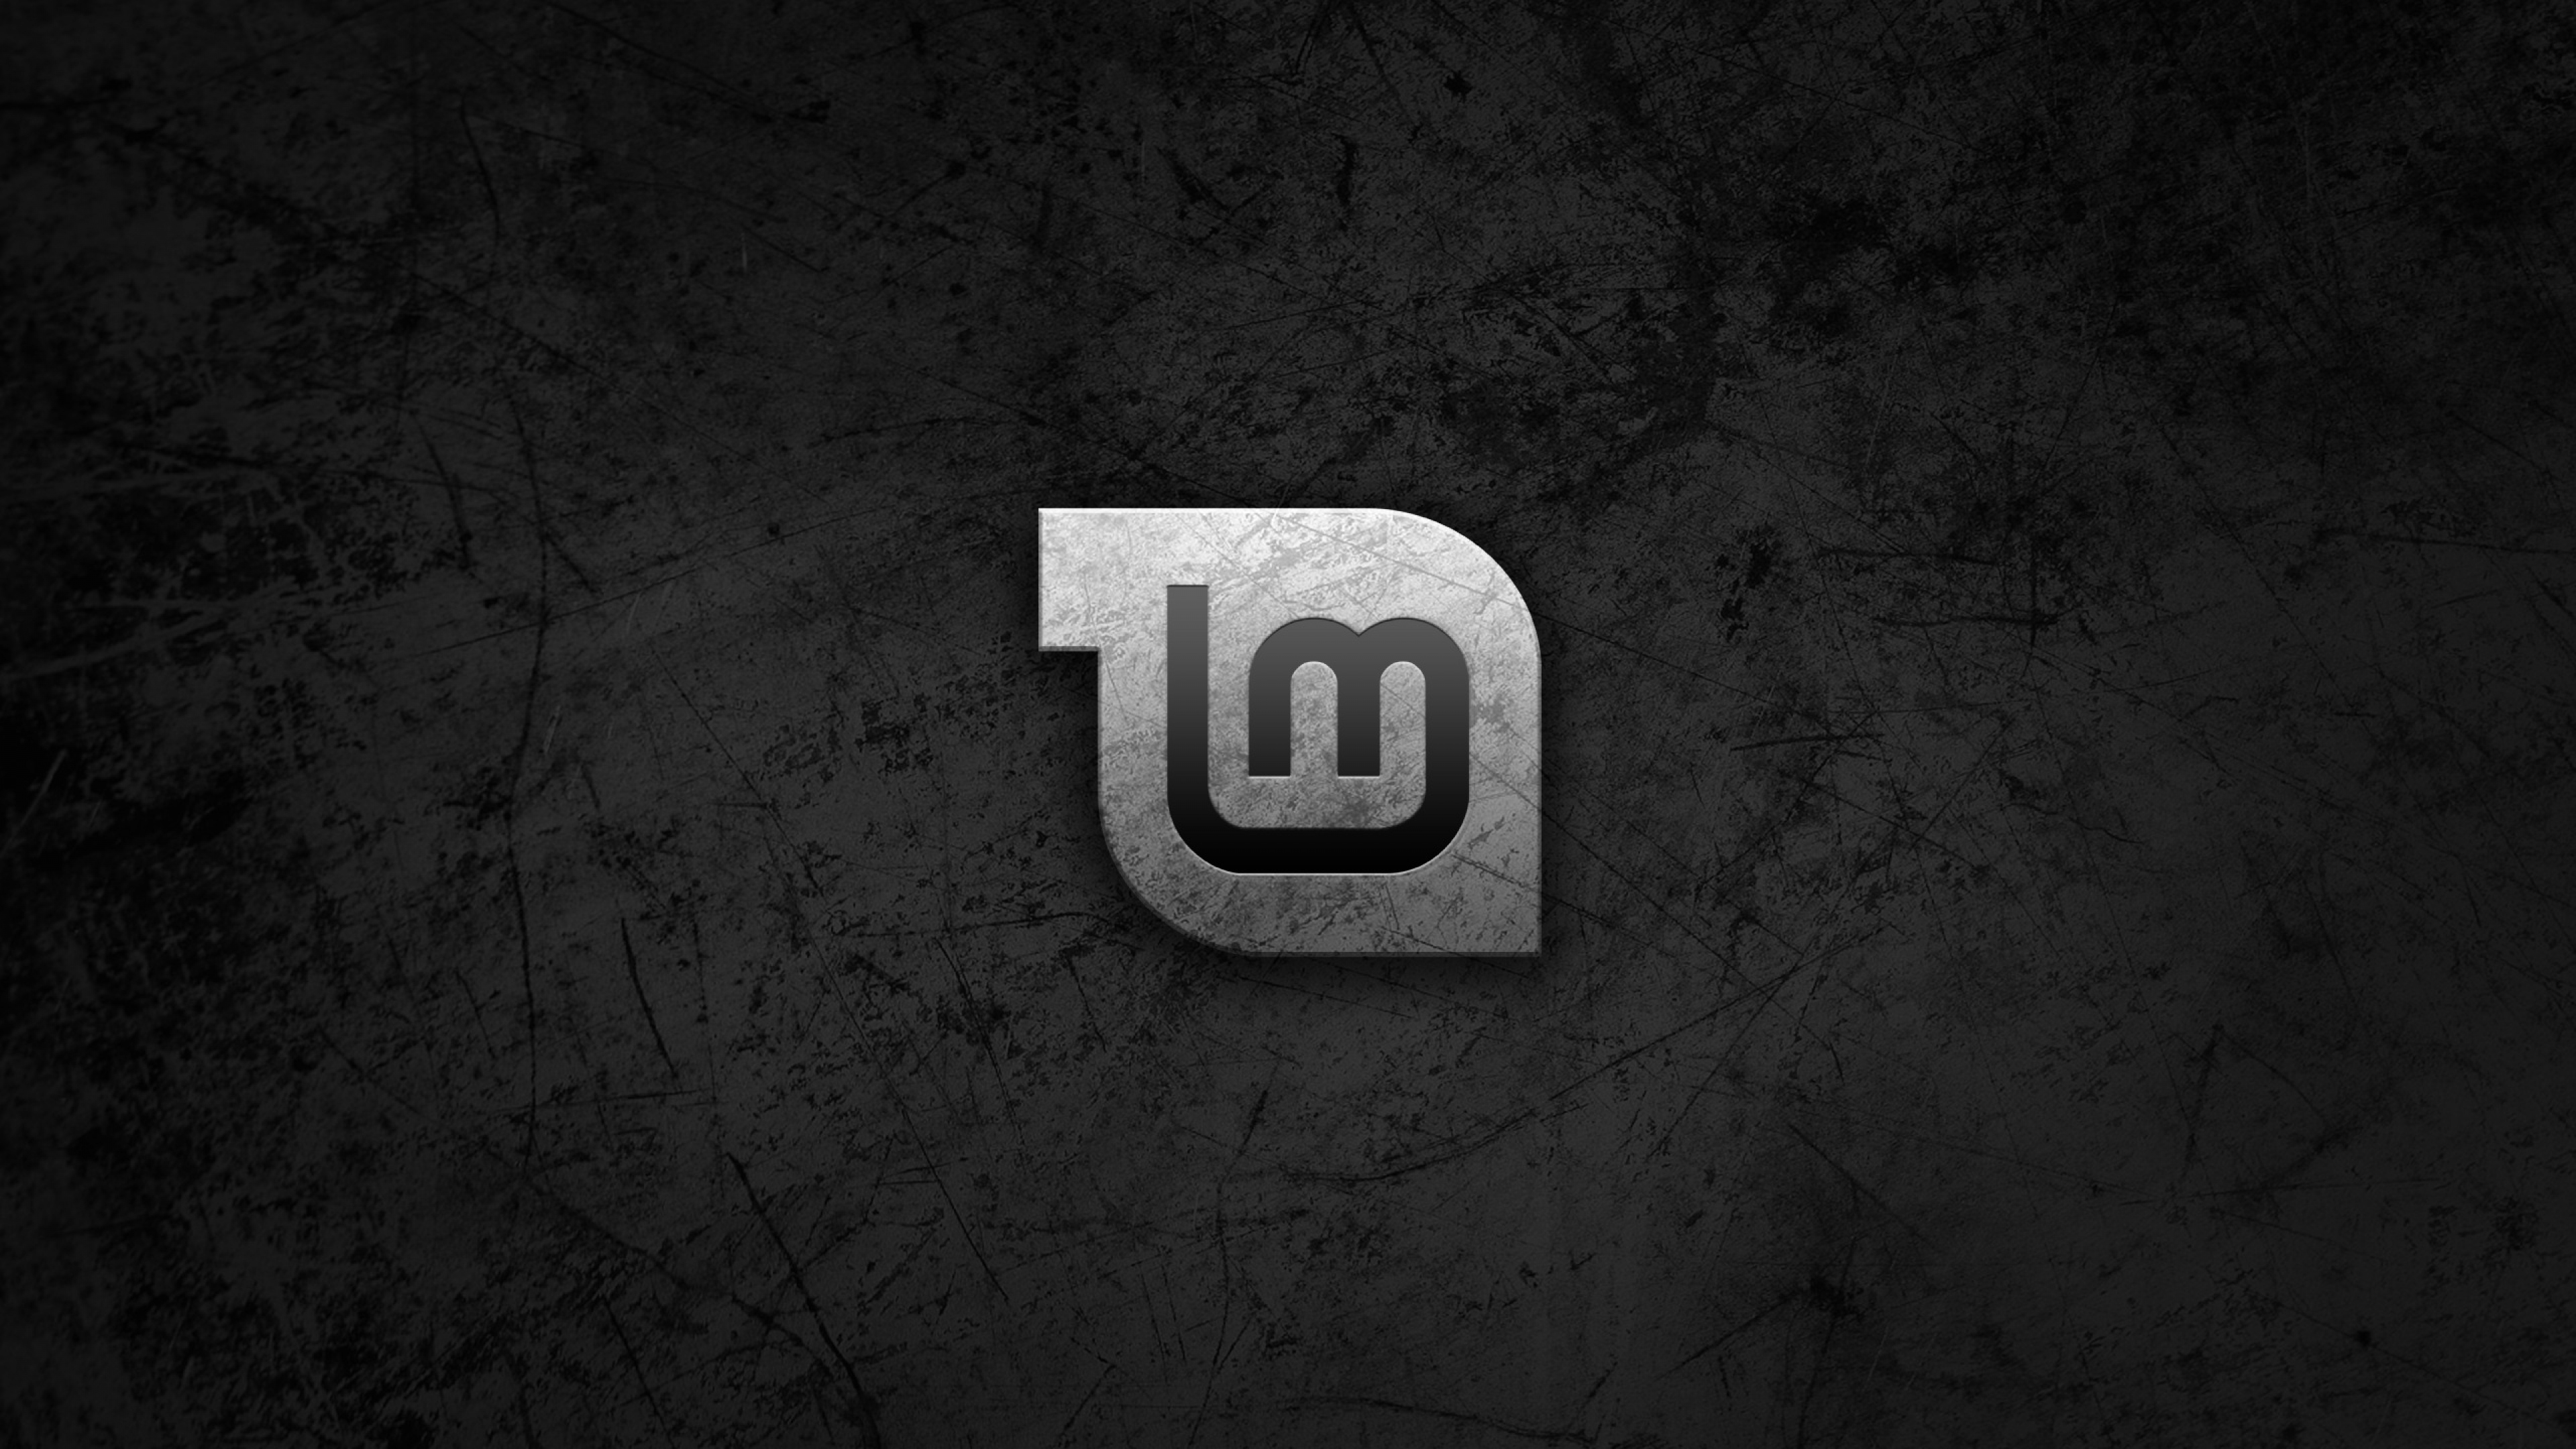 Linux Mint Black Wallpaper